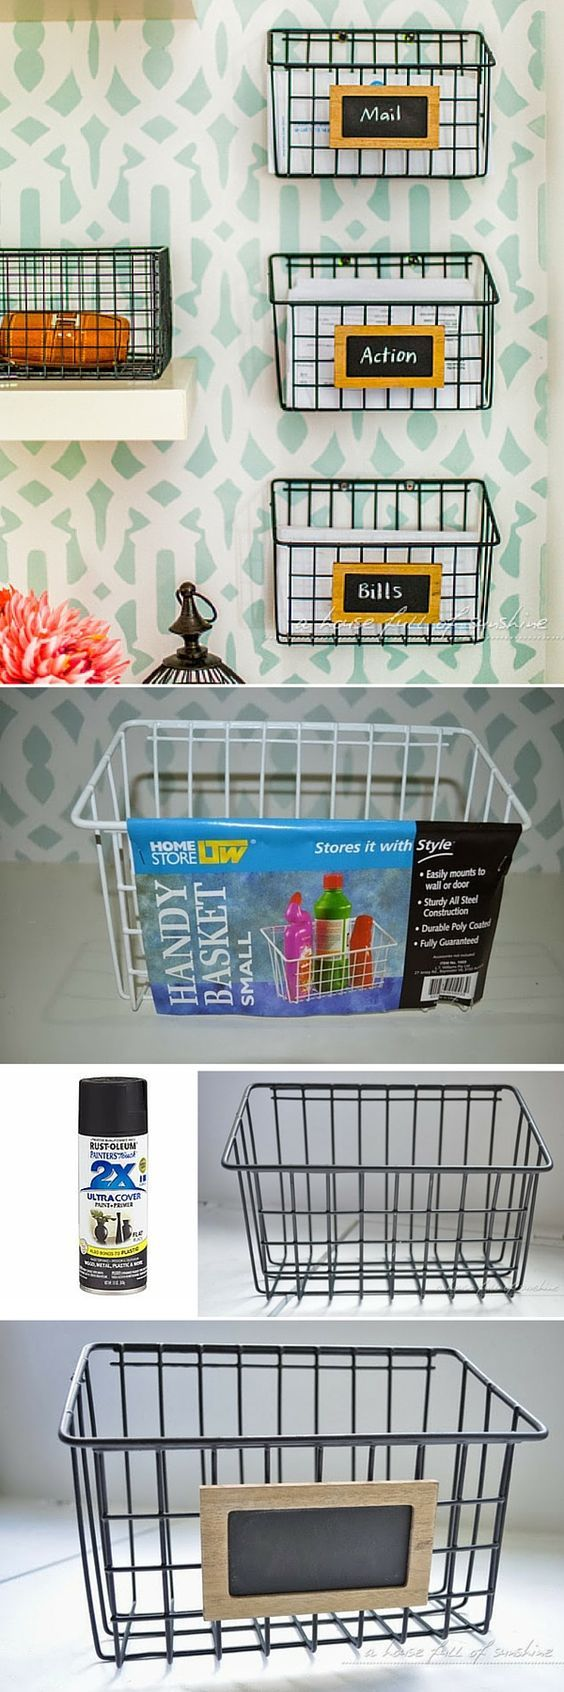 DIY Industrial Wire Mail Baskets.